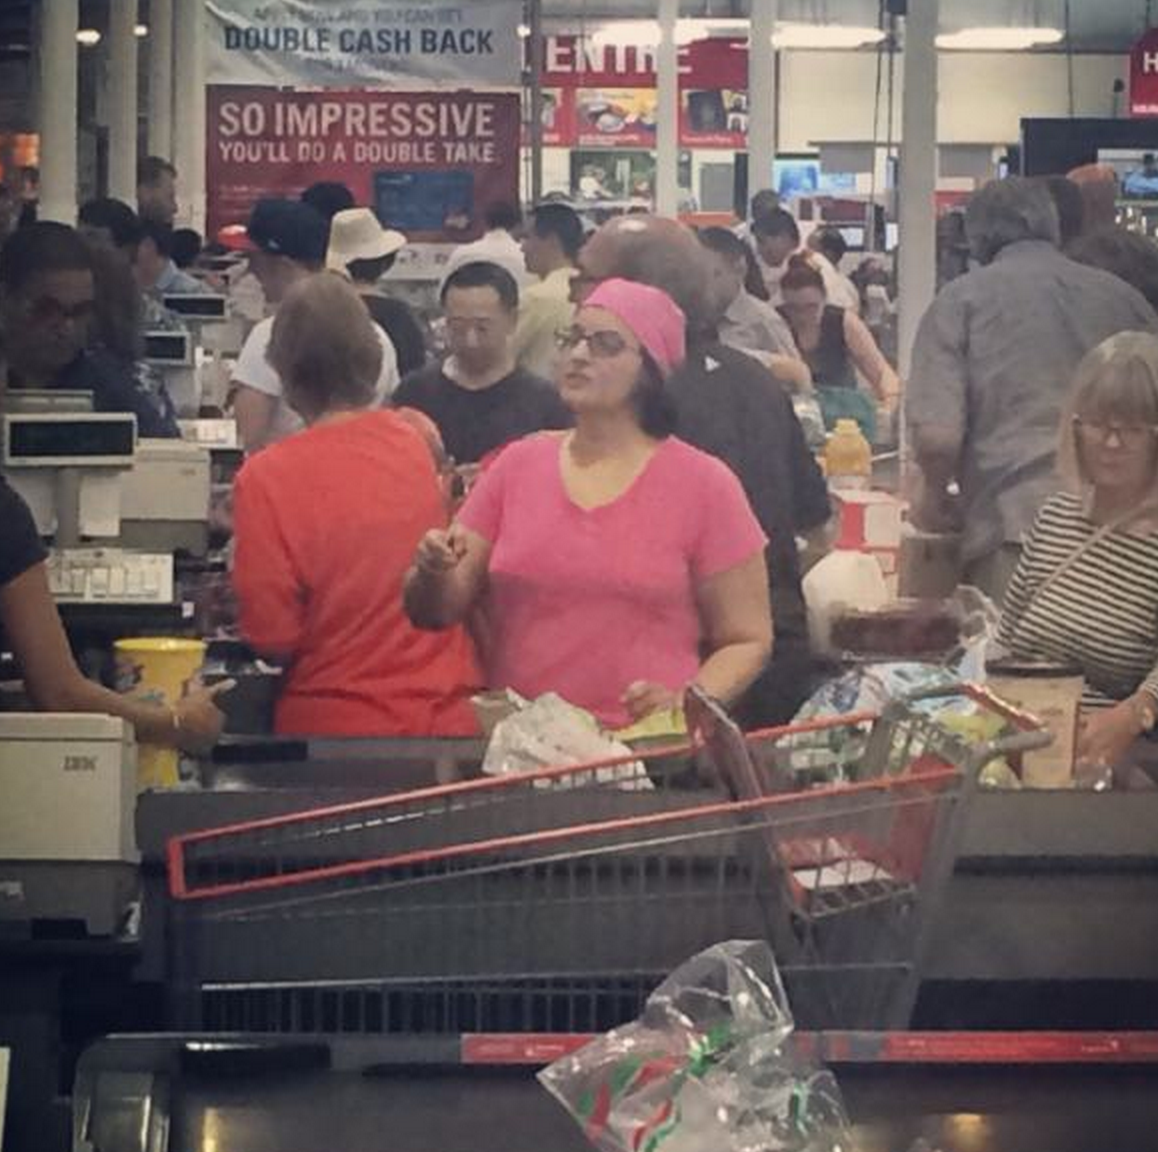 Meg Griffin spotted at my local CostCo